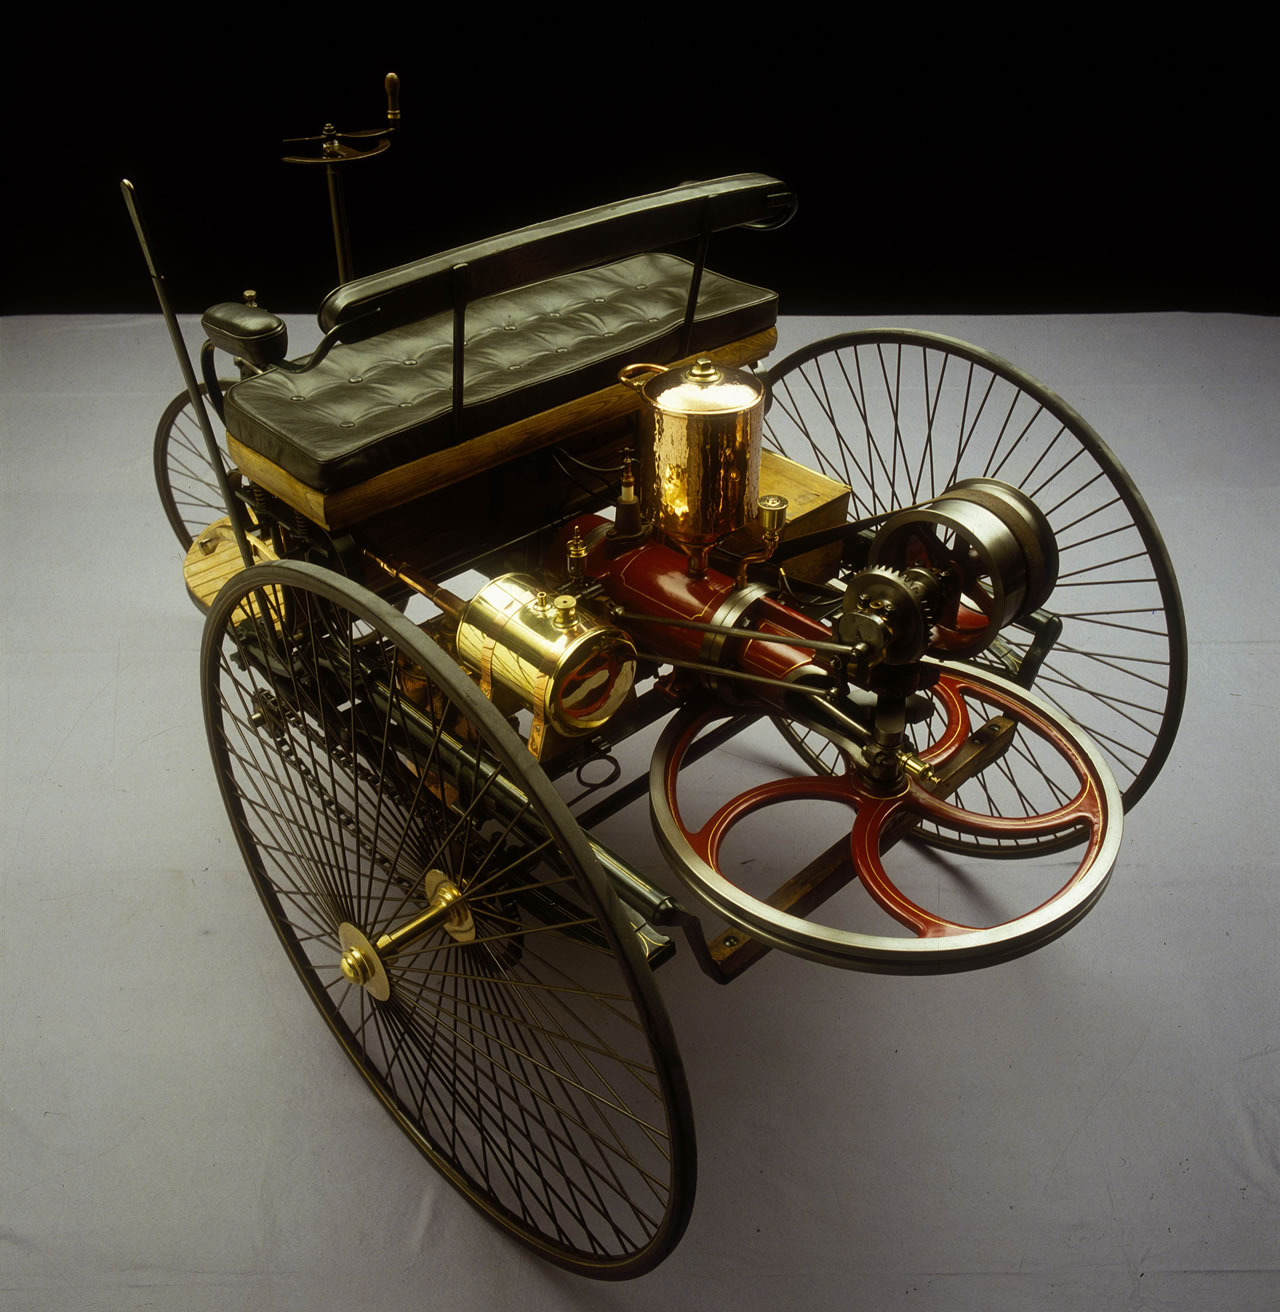 1000 images about cars 1885 1900 on pinterest first car for Mercedes benz 1900 model